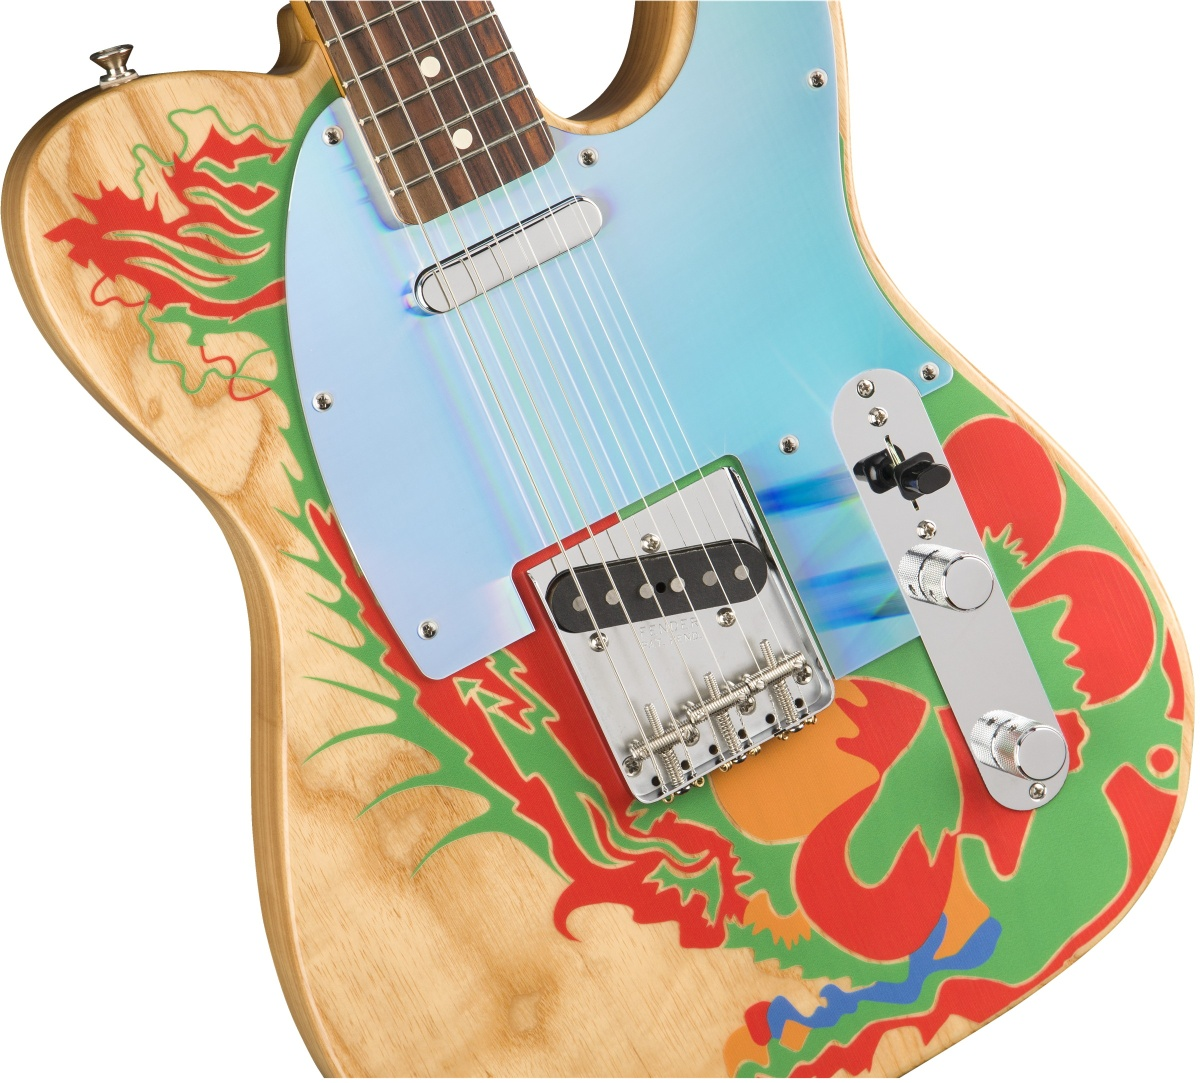 Fender / Jimmy Page Telecaster Rosewood Fingerboard Natural フェンダー ドラゴンテレキャスター